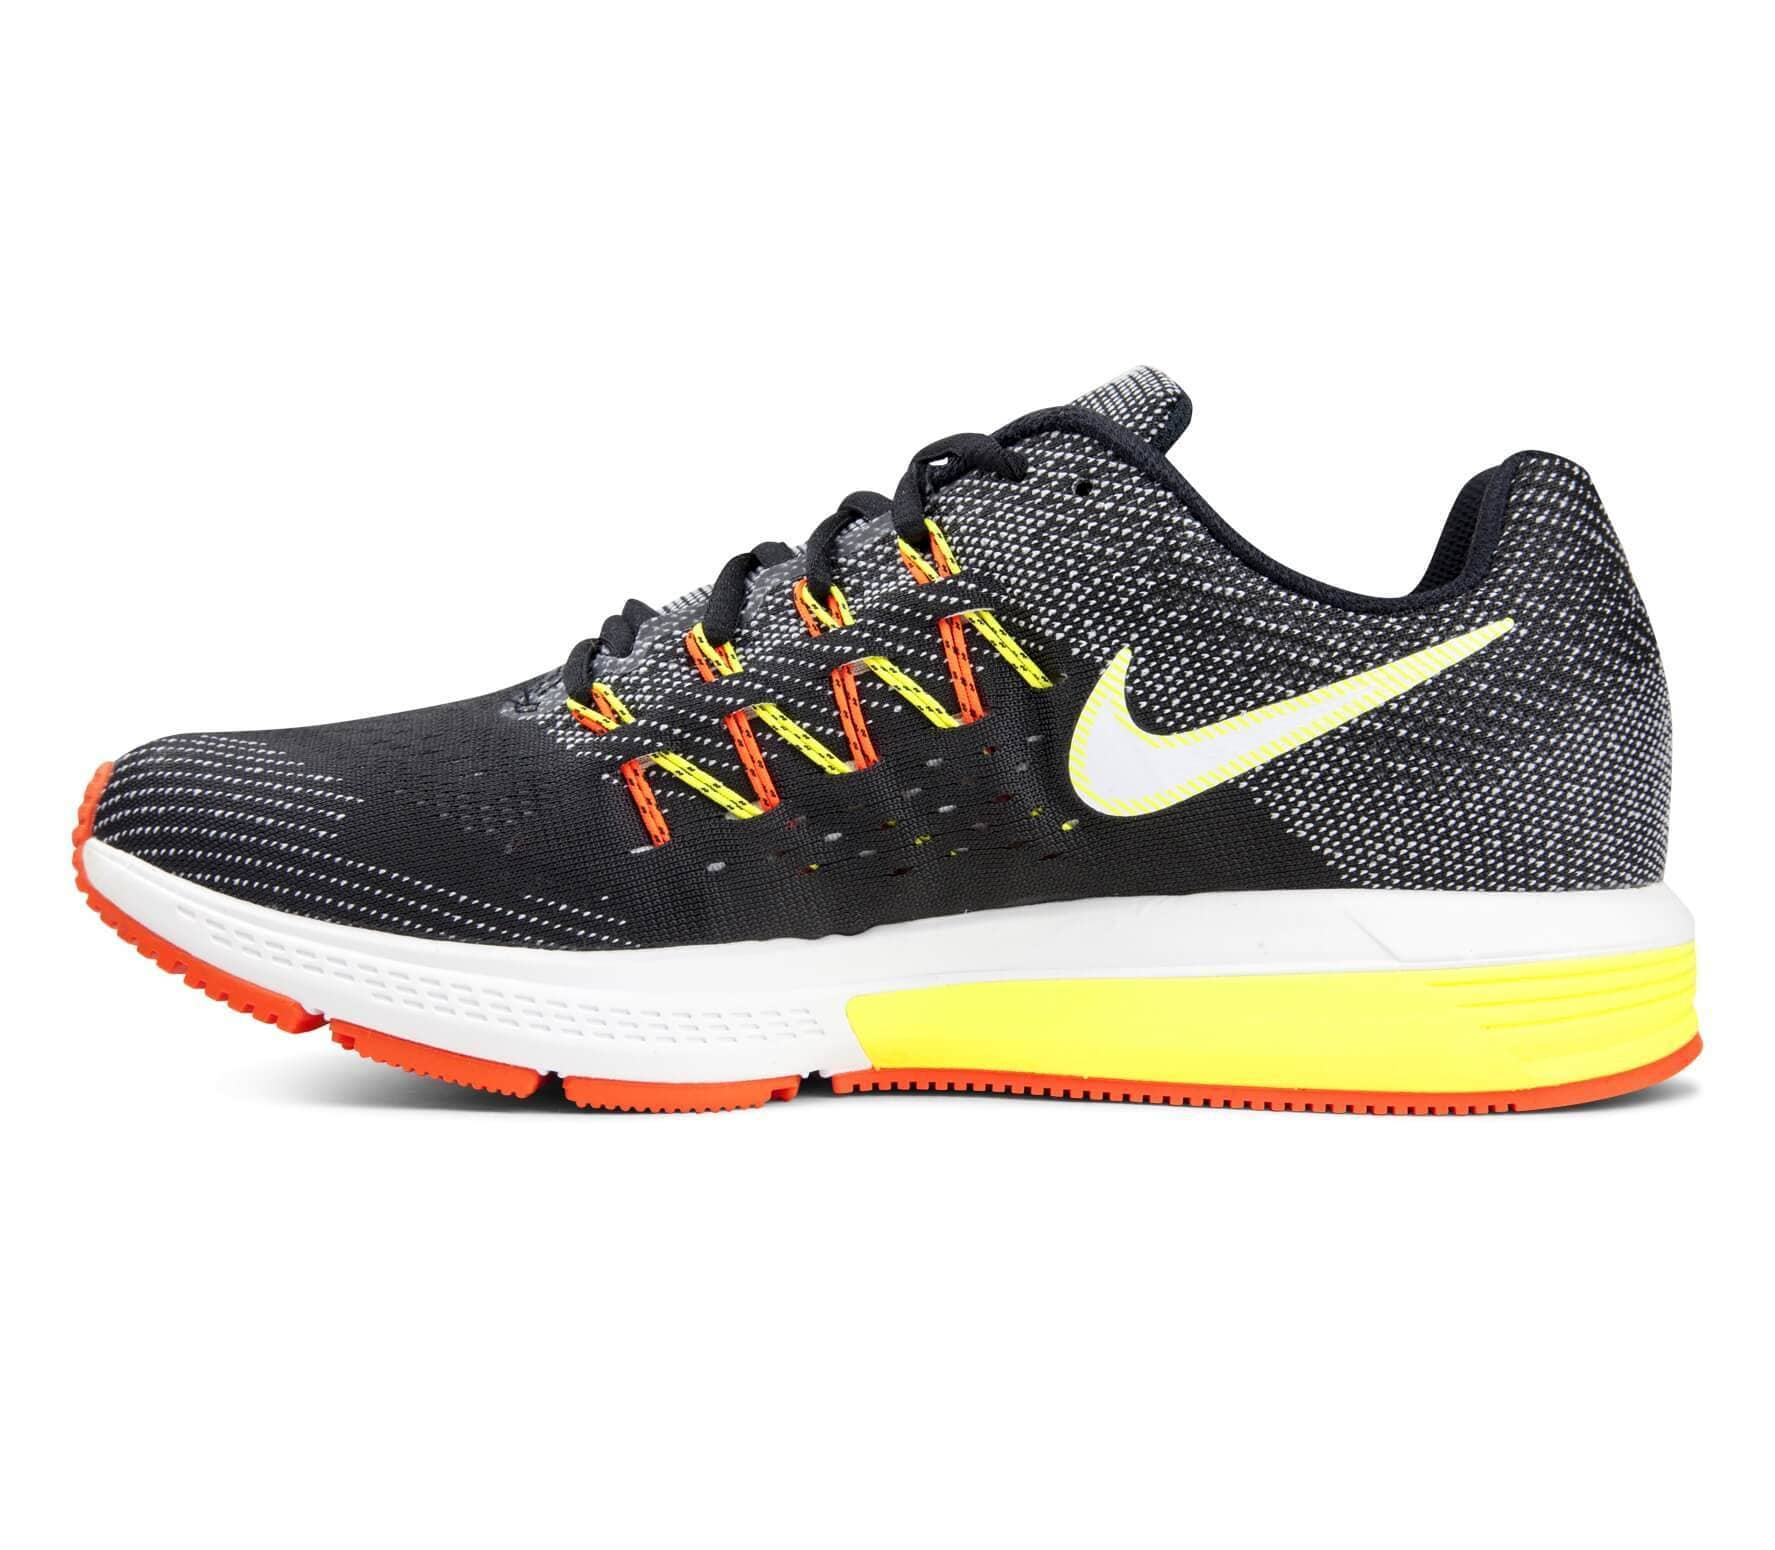 Details about MENS NIKE AIR ZOOM VOMERO 10 (717440)